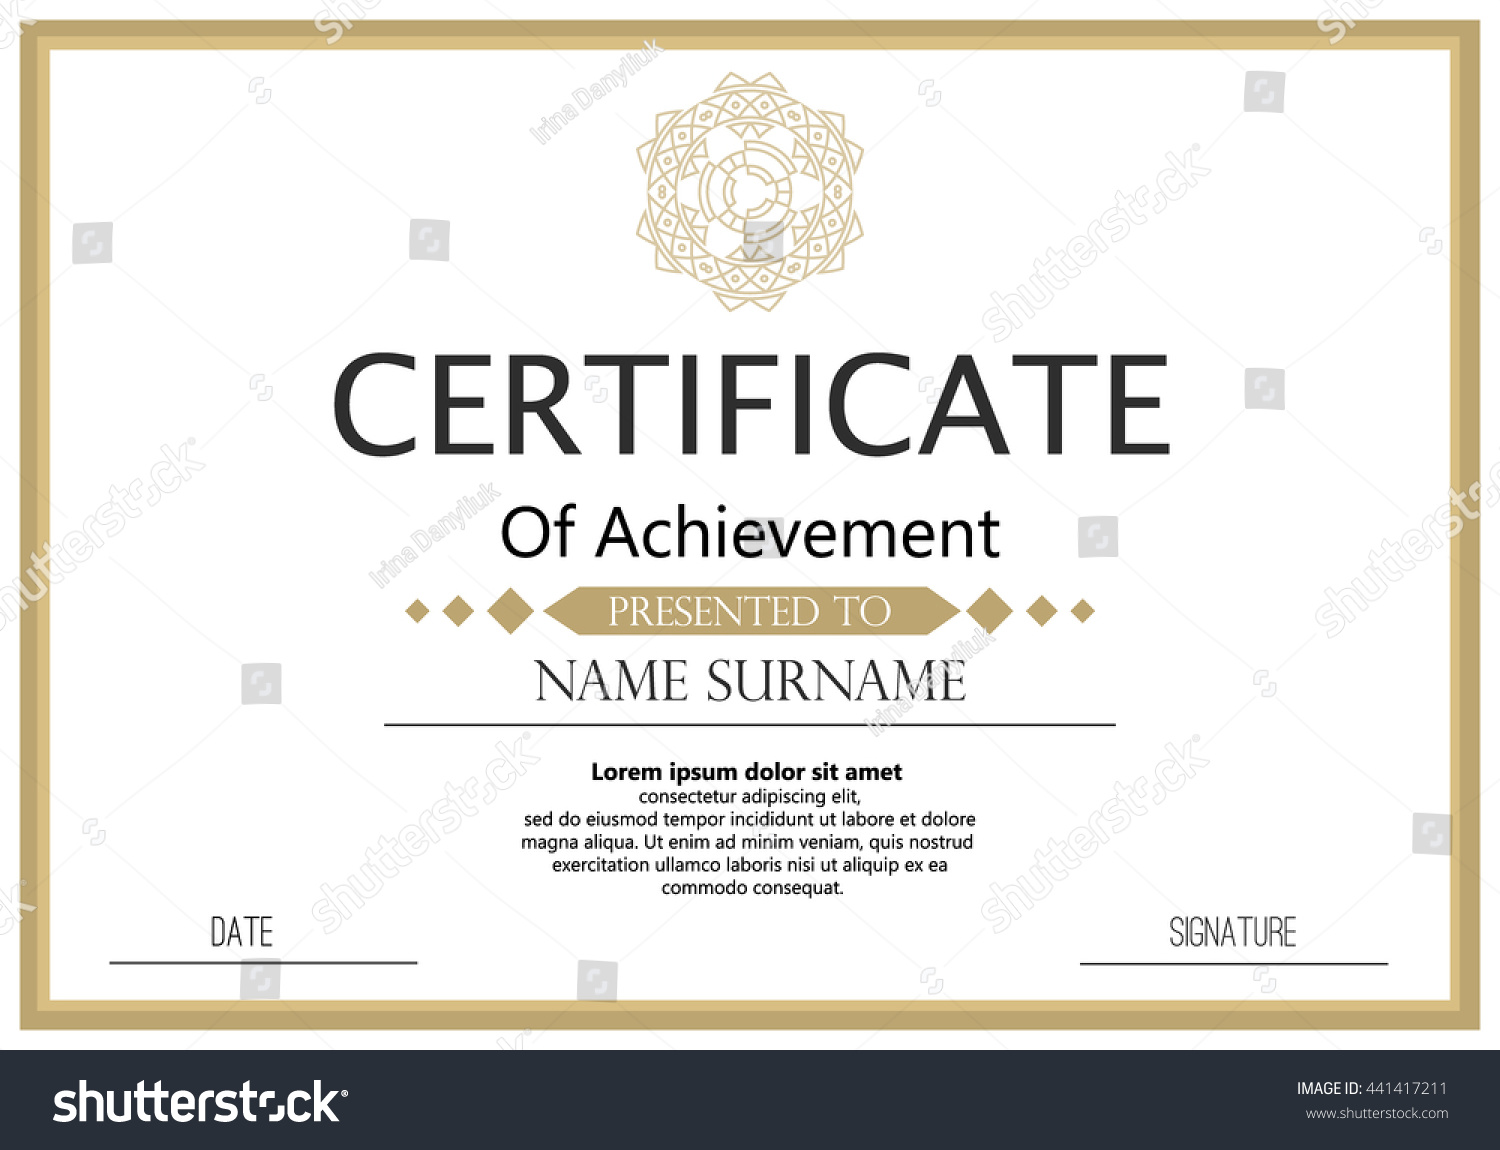 Certificate diploma template achievement success diploma stock certificate or diploma template achievement success diploma certificate graduation ornament elegant coupon decoration border xflitez Choice Image